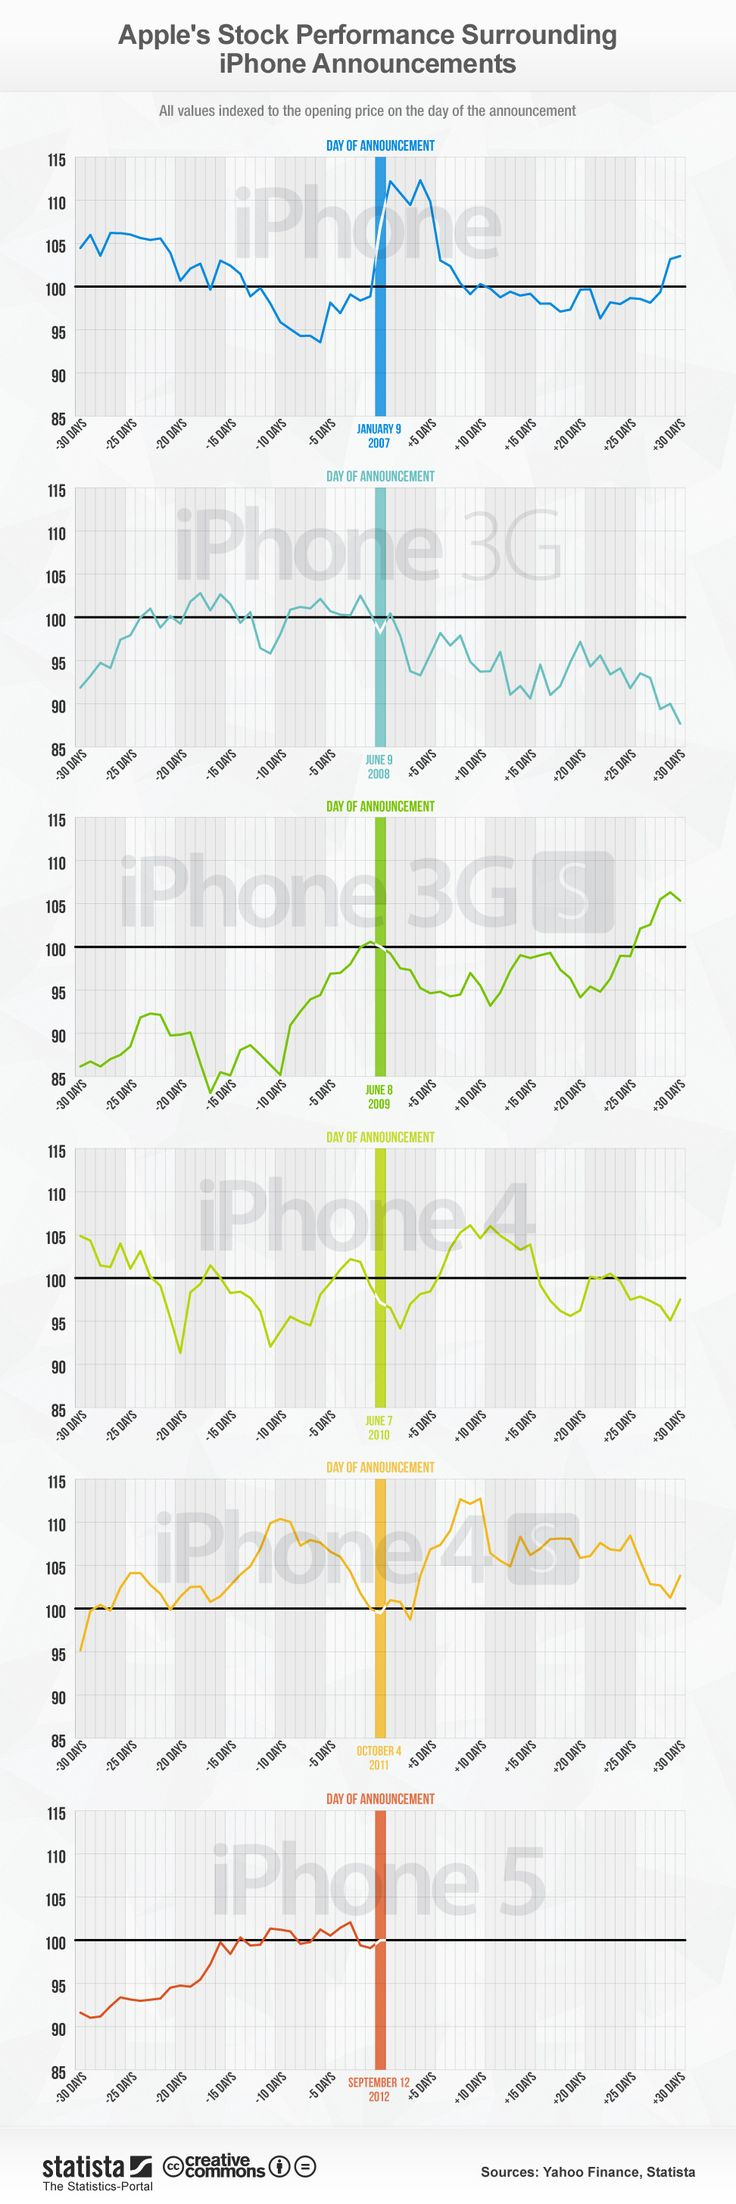 How Apple's iPhone Announcements Affect The Stock [Infographic]